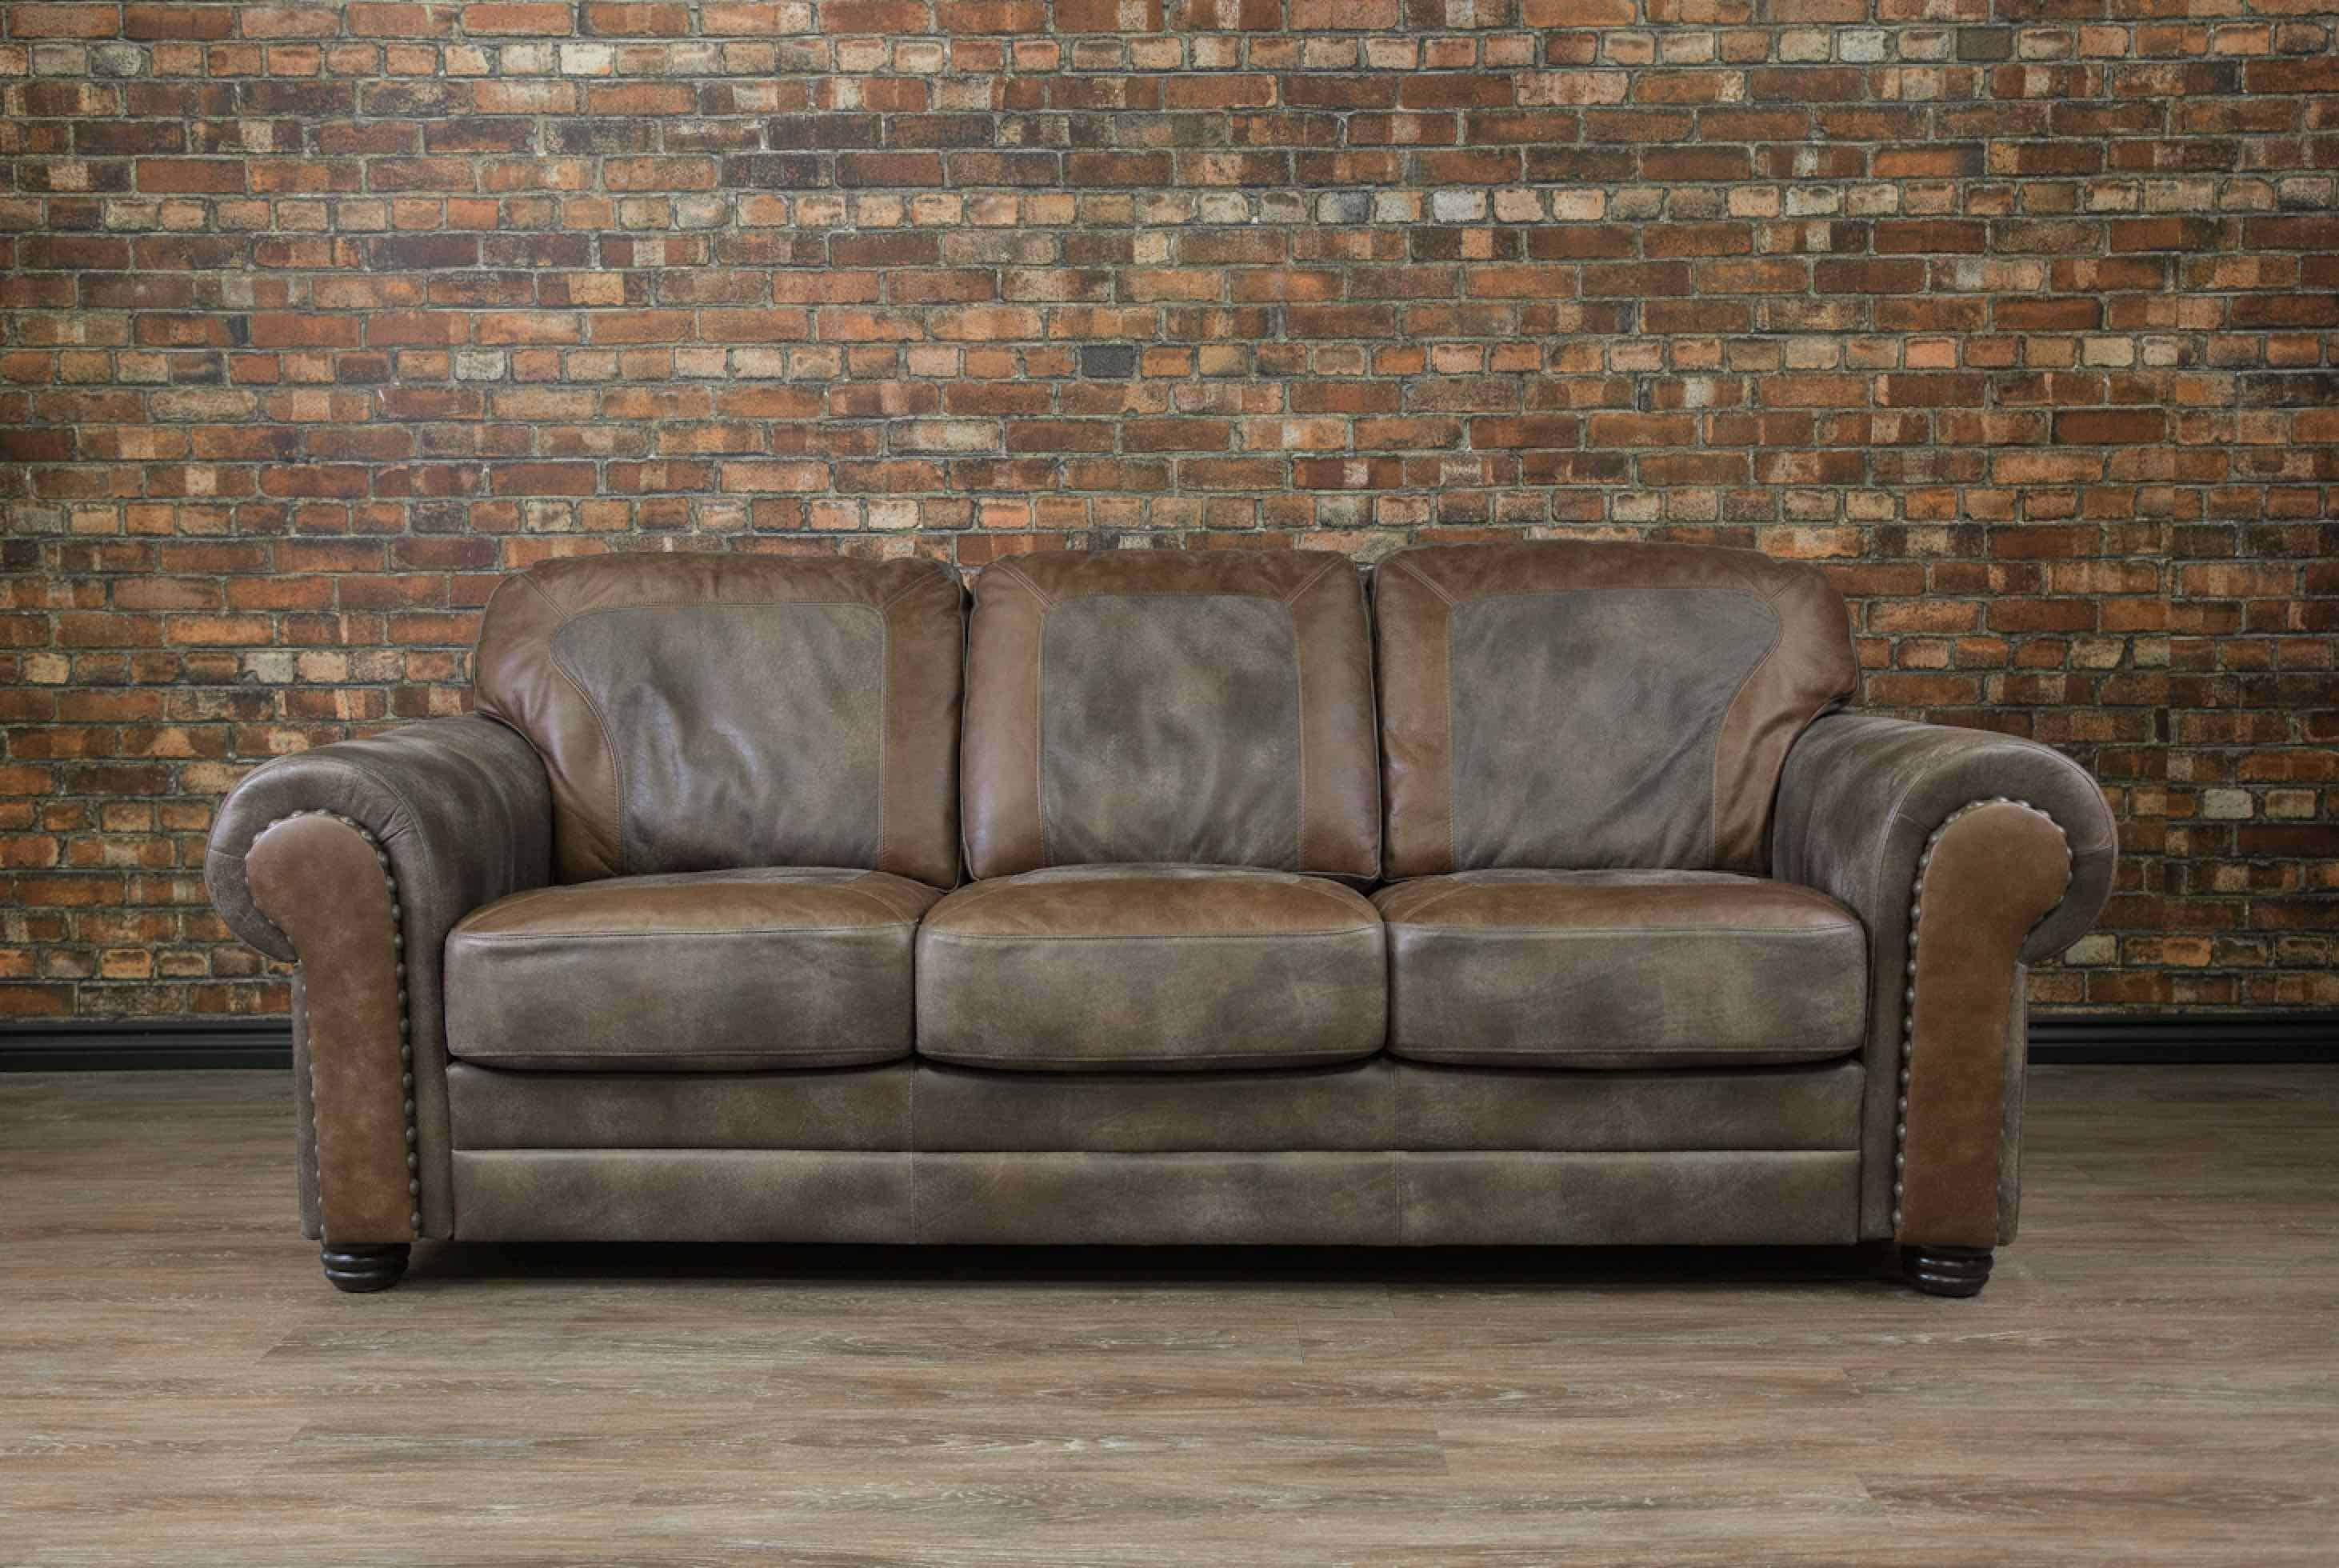 The Old West Leather Sofa Canada S Boss Leather Sofas